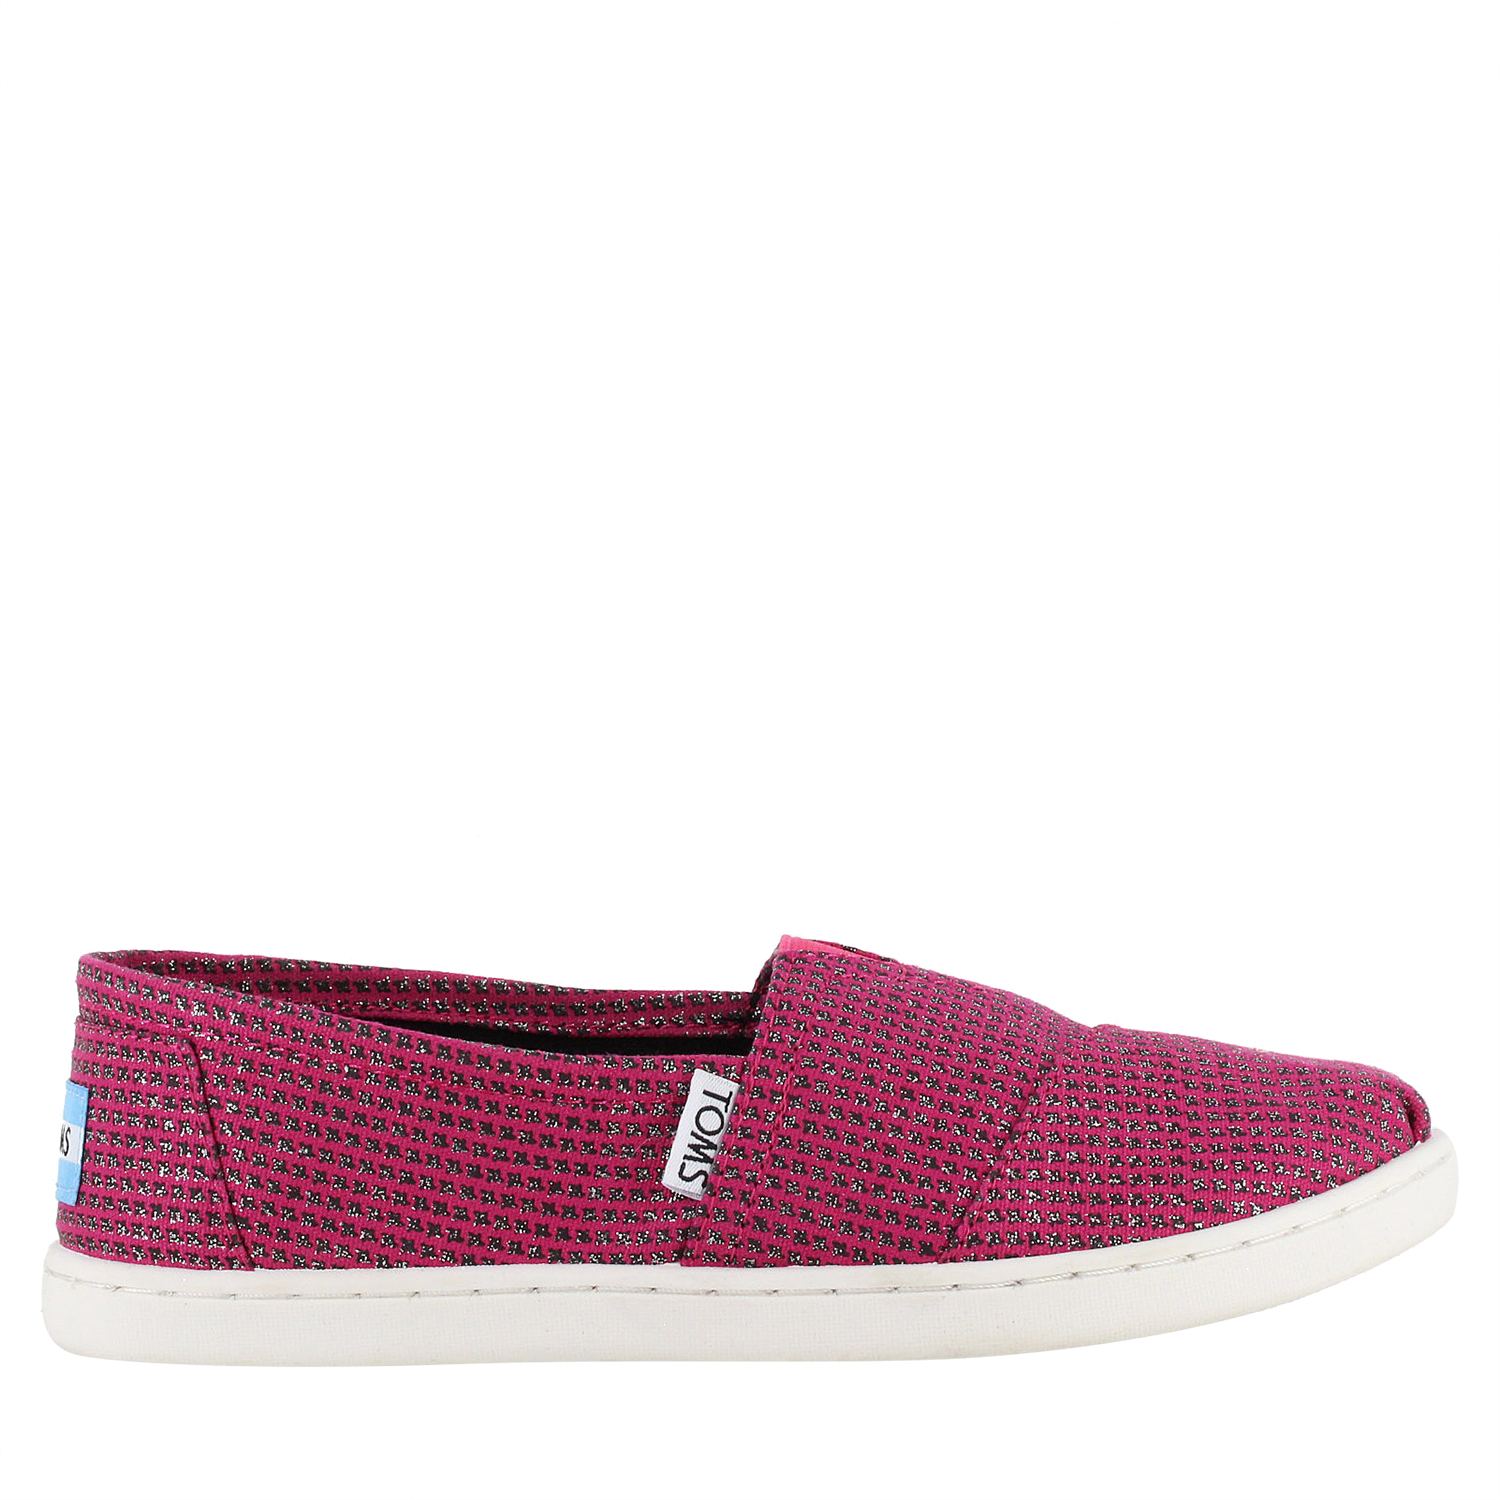 64115f01111 Details about TOMS YOUTH CLASSIC SLIP-ON Canvas SHOES 10003572 SIZE 3.5